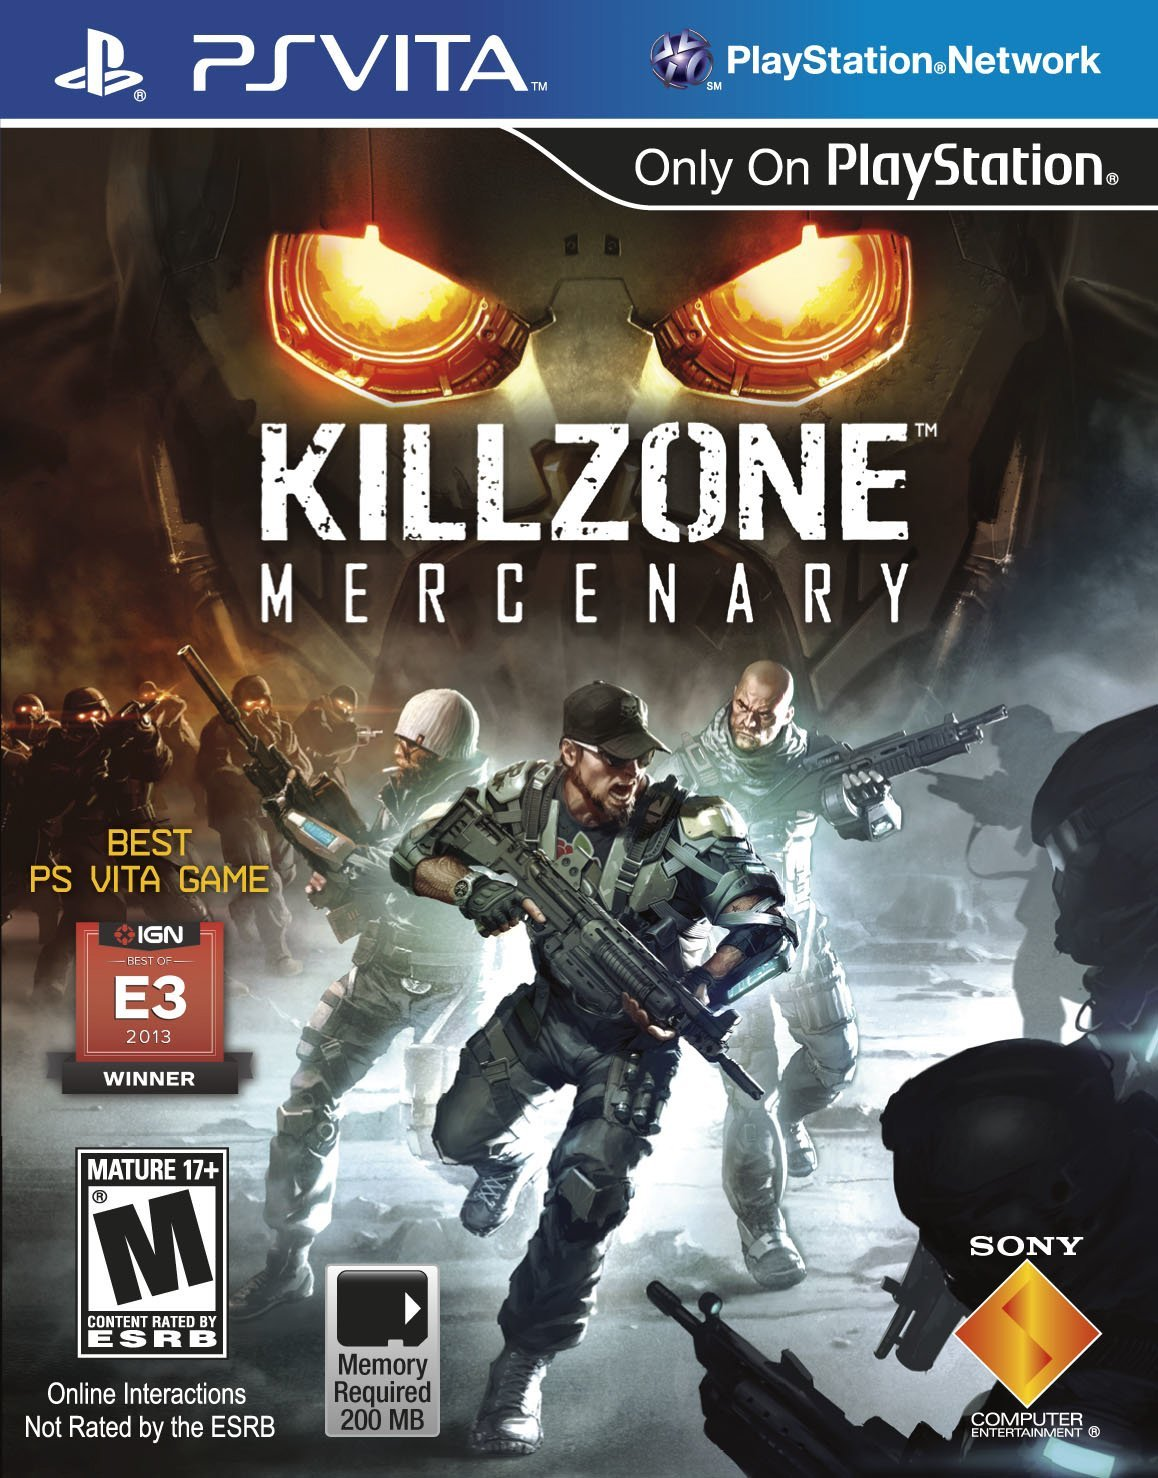 Killzone Mercenary (VPK/MAI) PS VITA - PS VITA